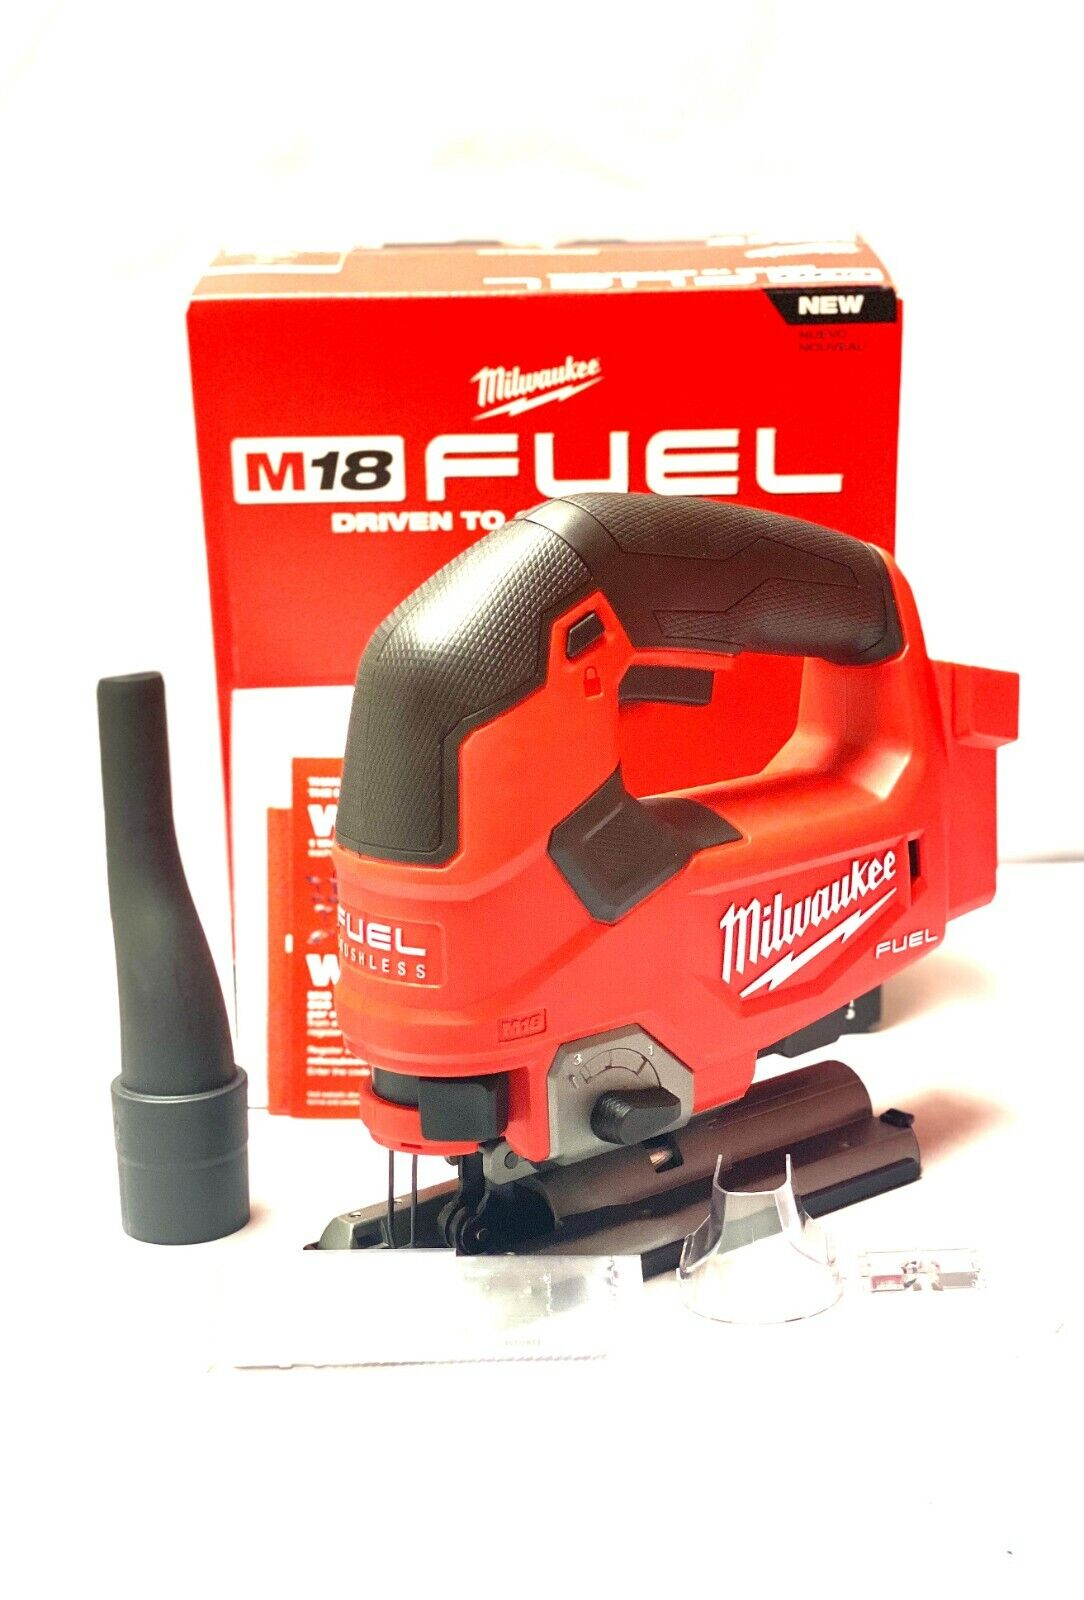 Milwaukee FUEL M18 2737-20 18-Volt Cordless D-Handle Jig Saw